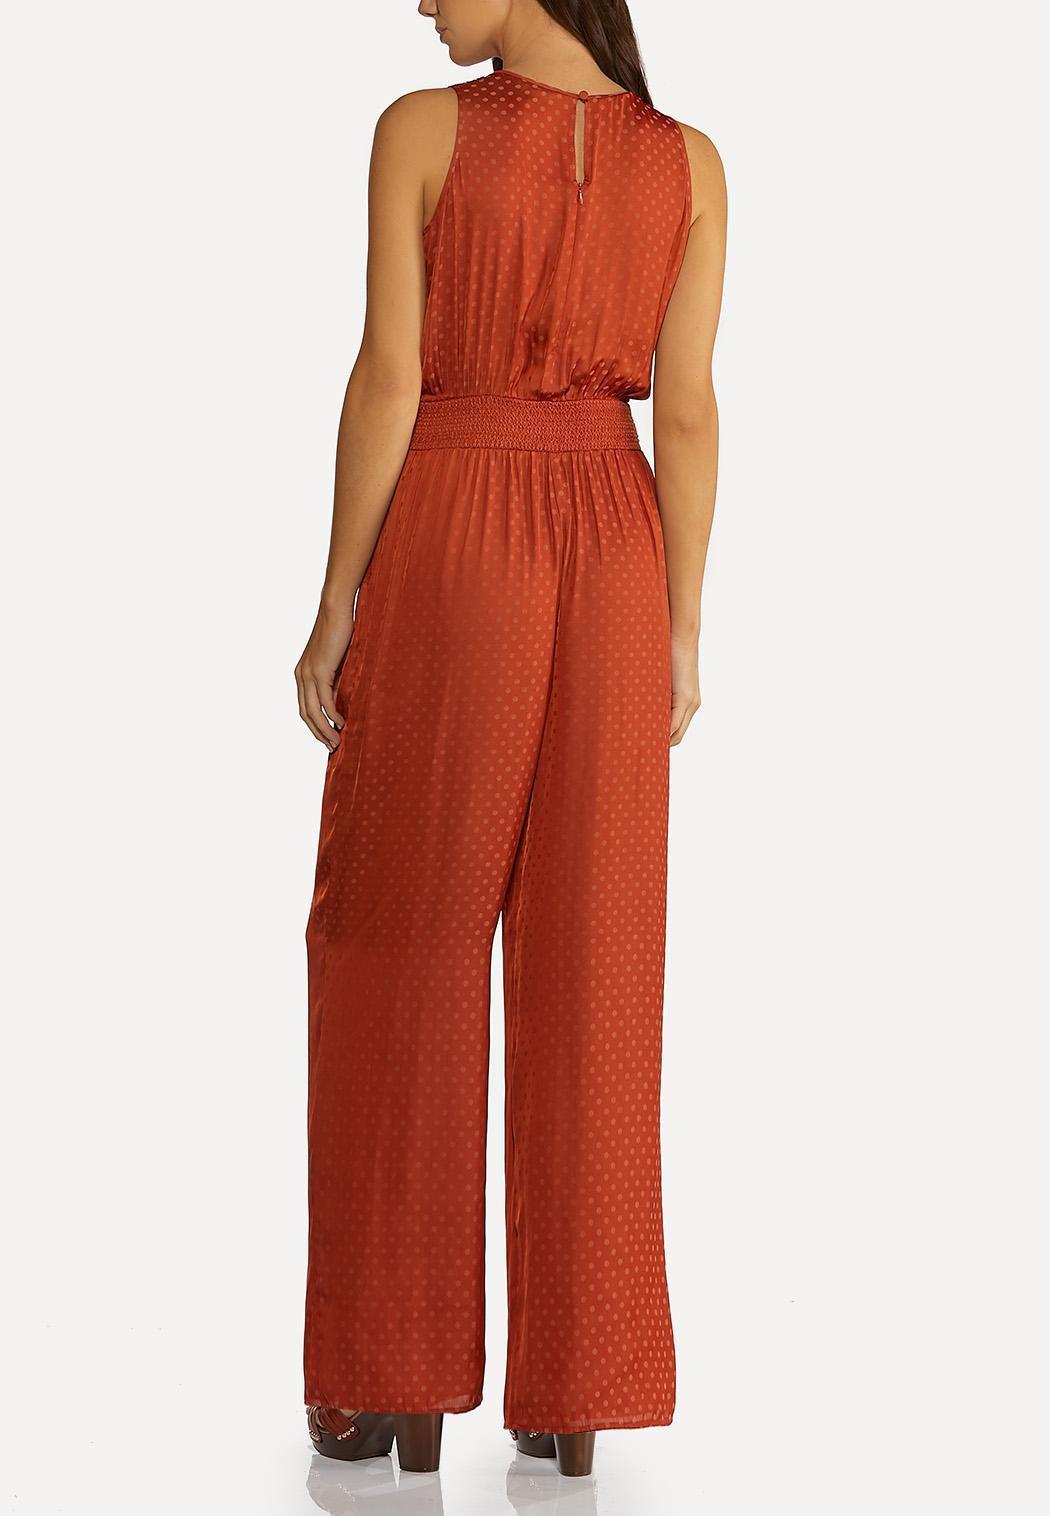 Petite Silky Dotted Jumpsuit (Item #44173032)